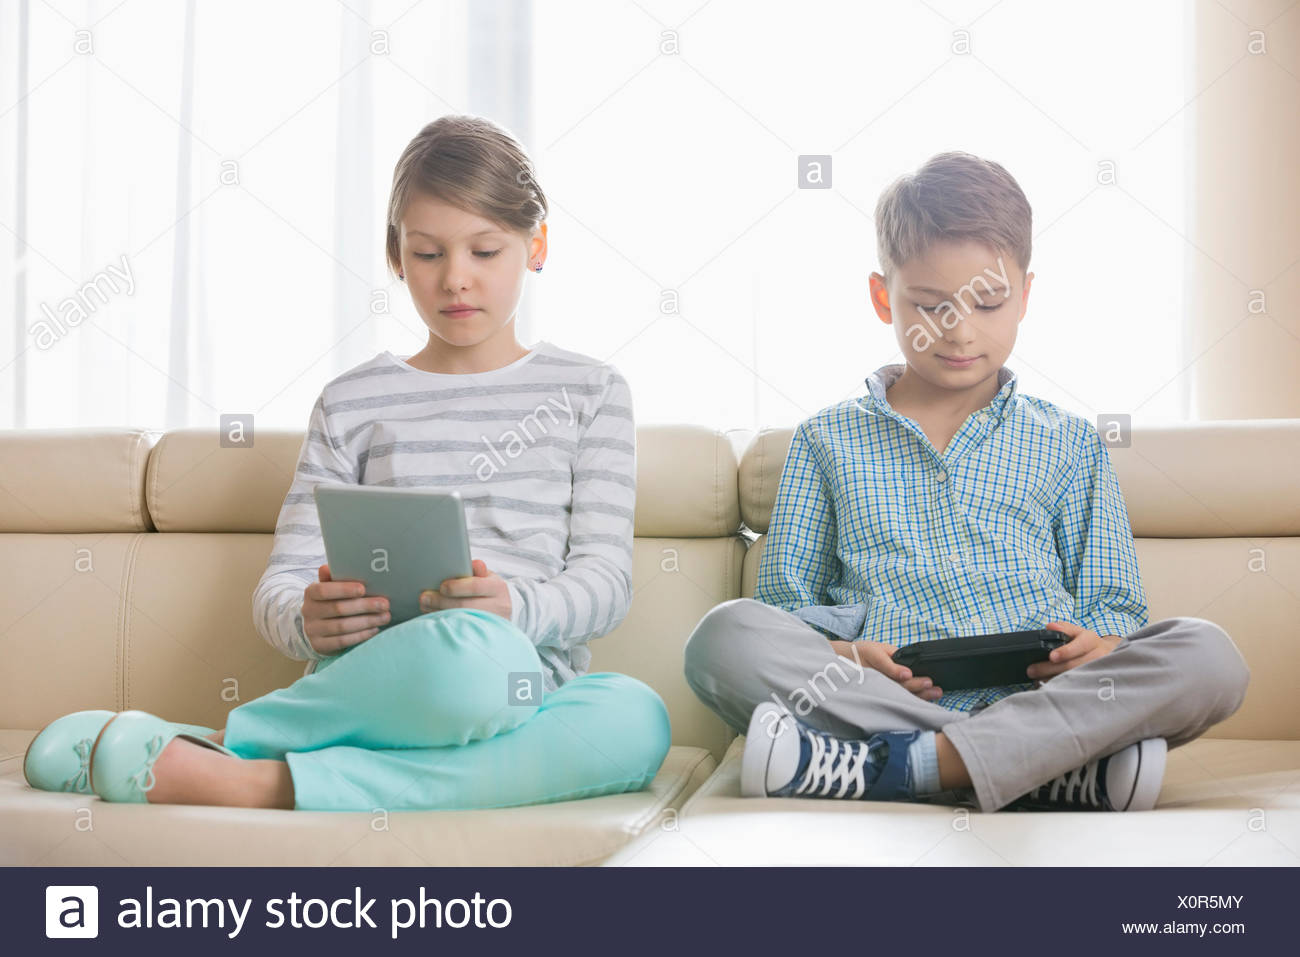 Cute siblings using technologies on sofa at home - Stock Image